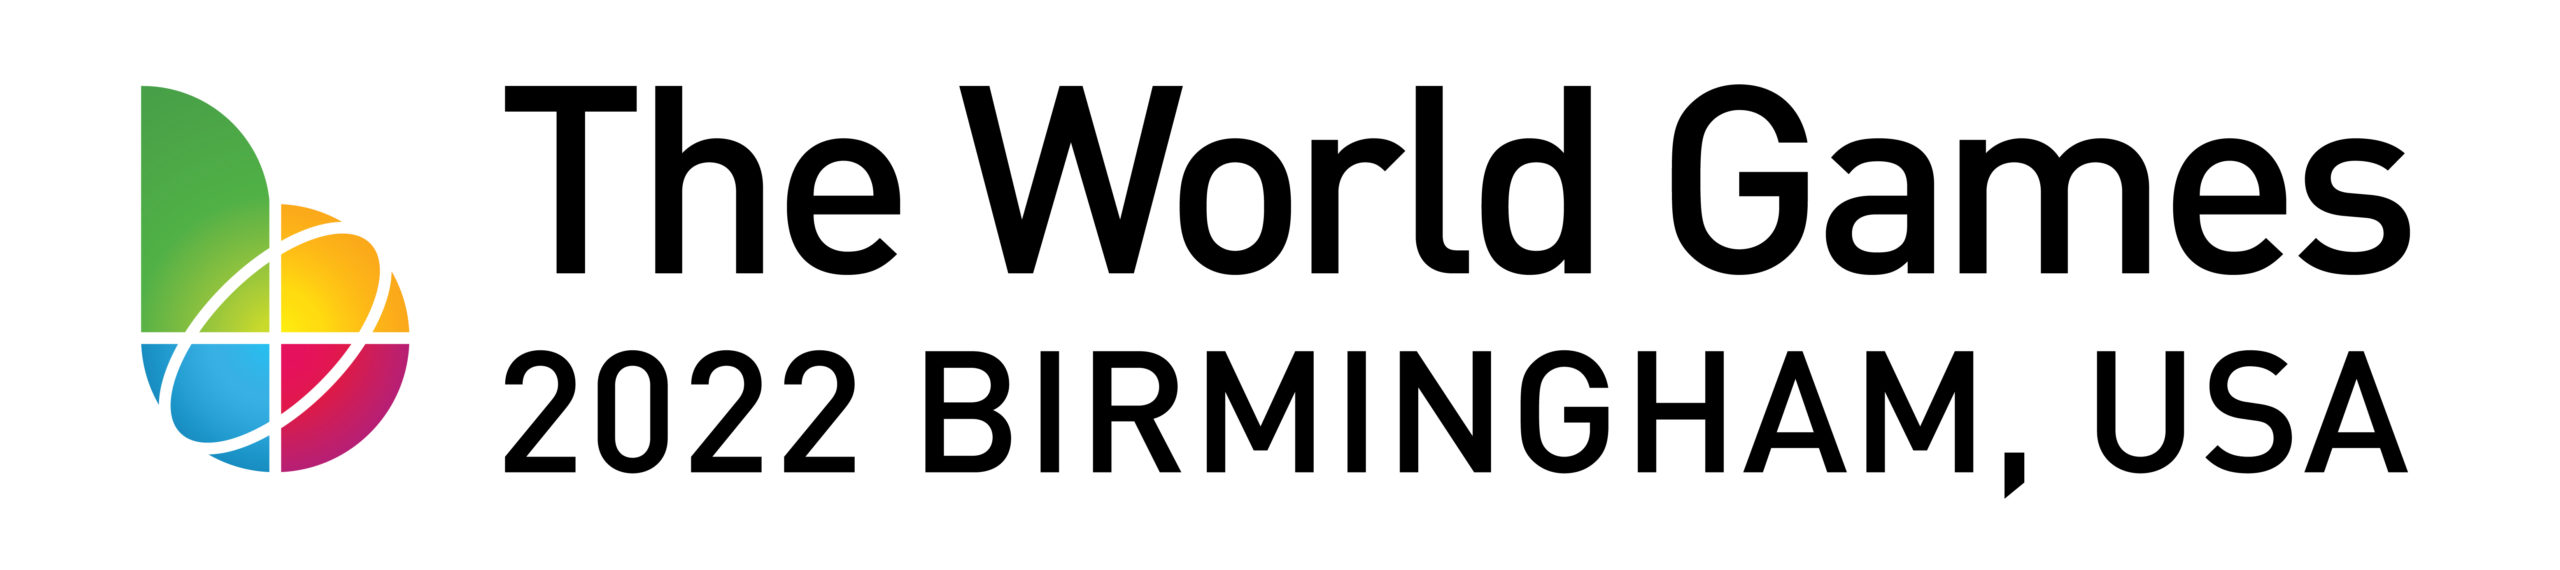 The World Games 2022 | Birmingham, USA